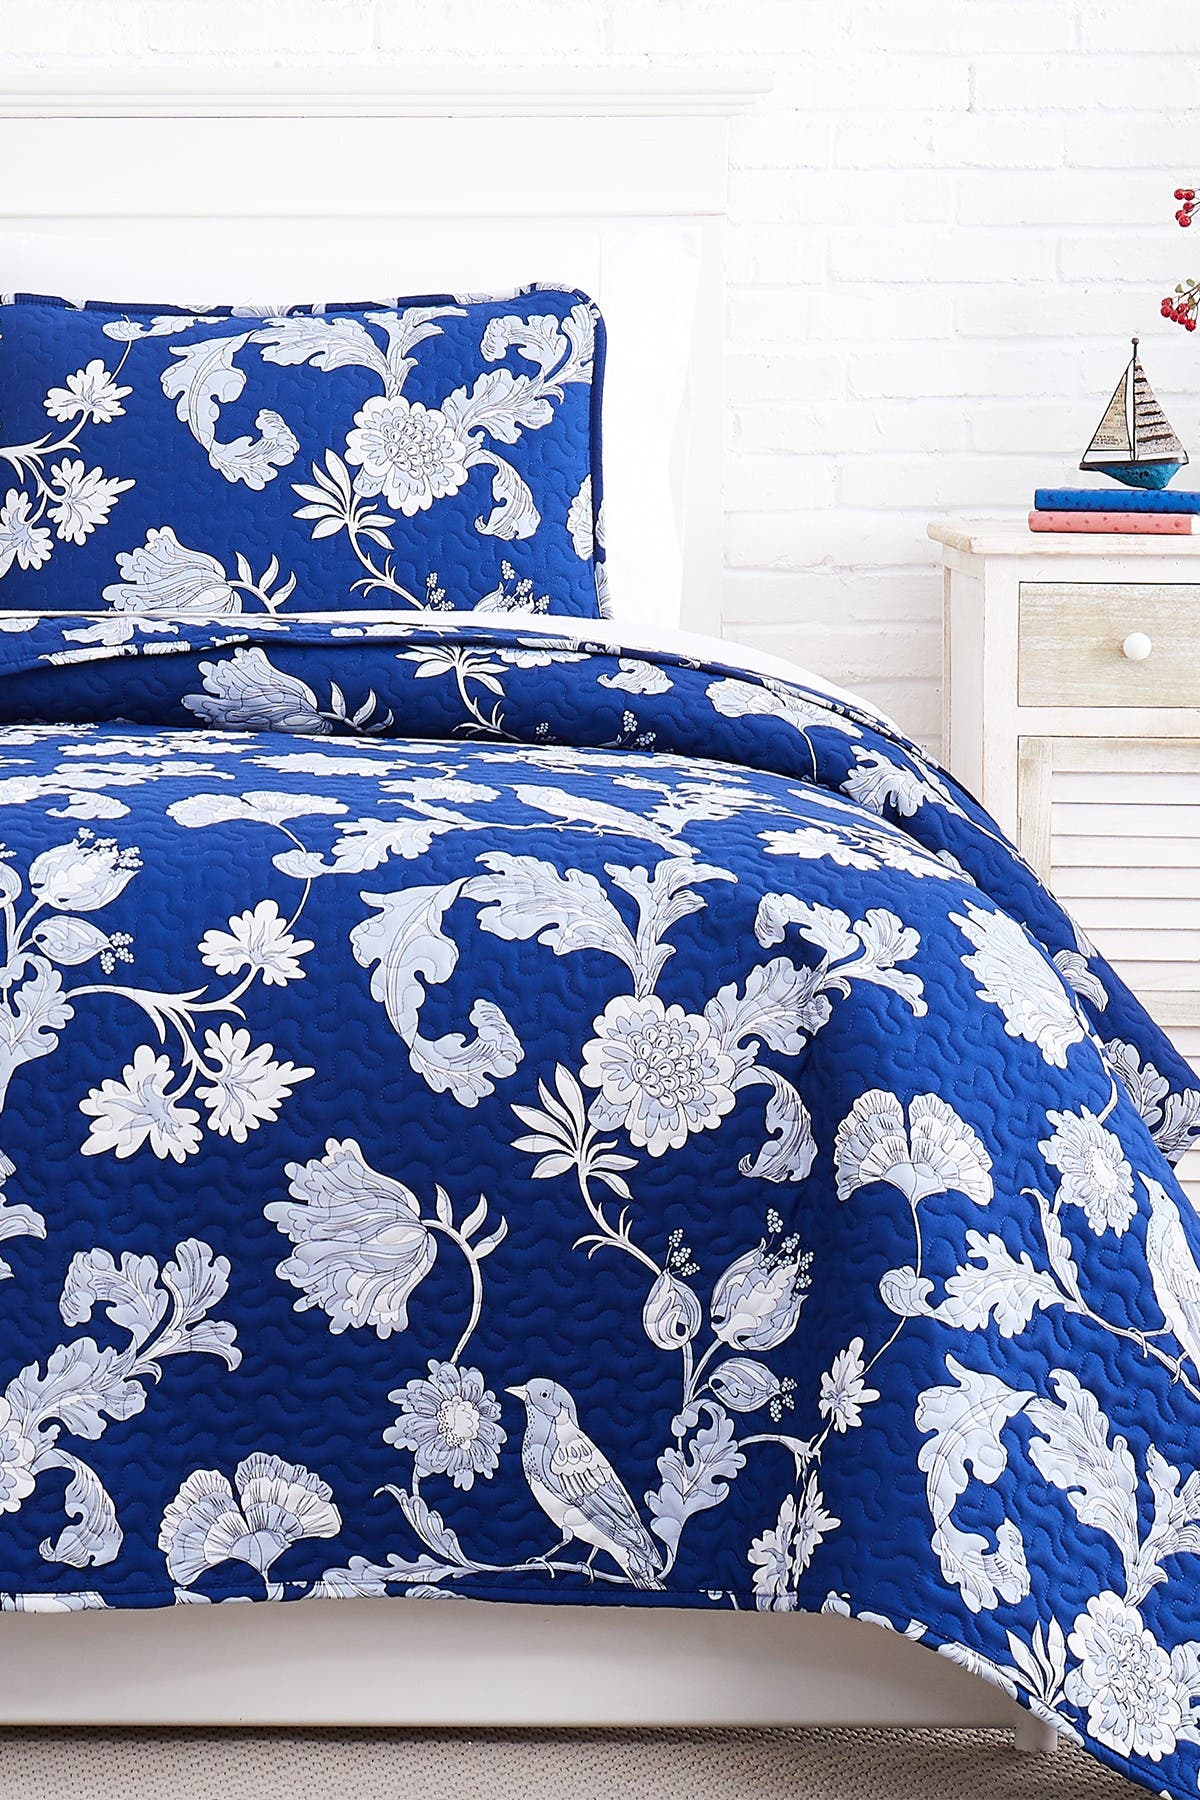 Image of SOUTHSHORE FINE LINENS Premium Collection Oversized Quilt 3-Piece Set - King/California King